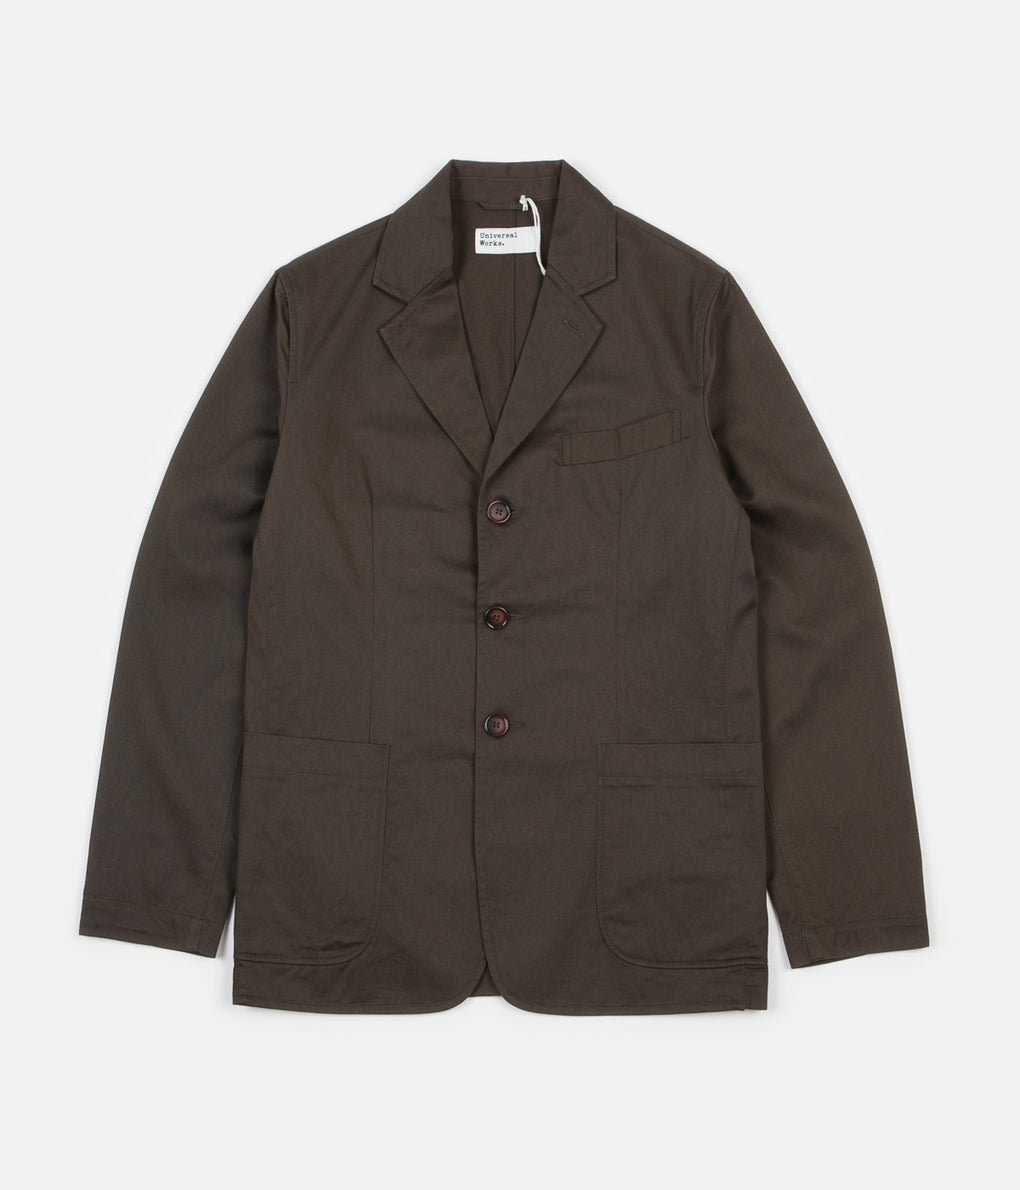 Universal Works London Jacket - Olive